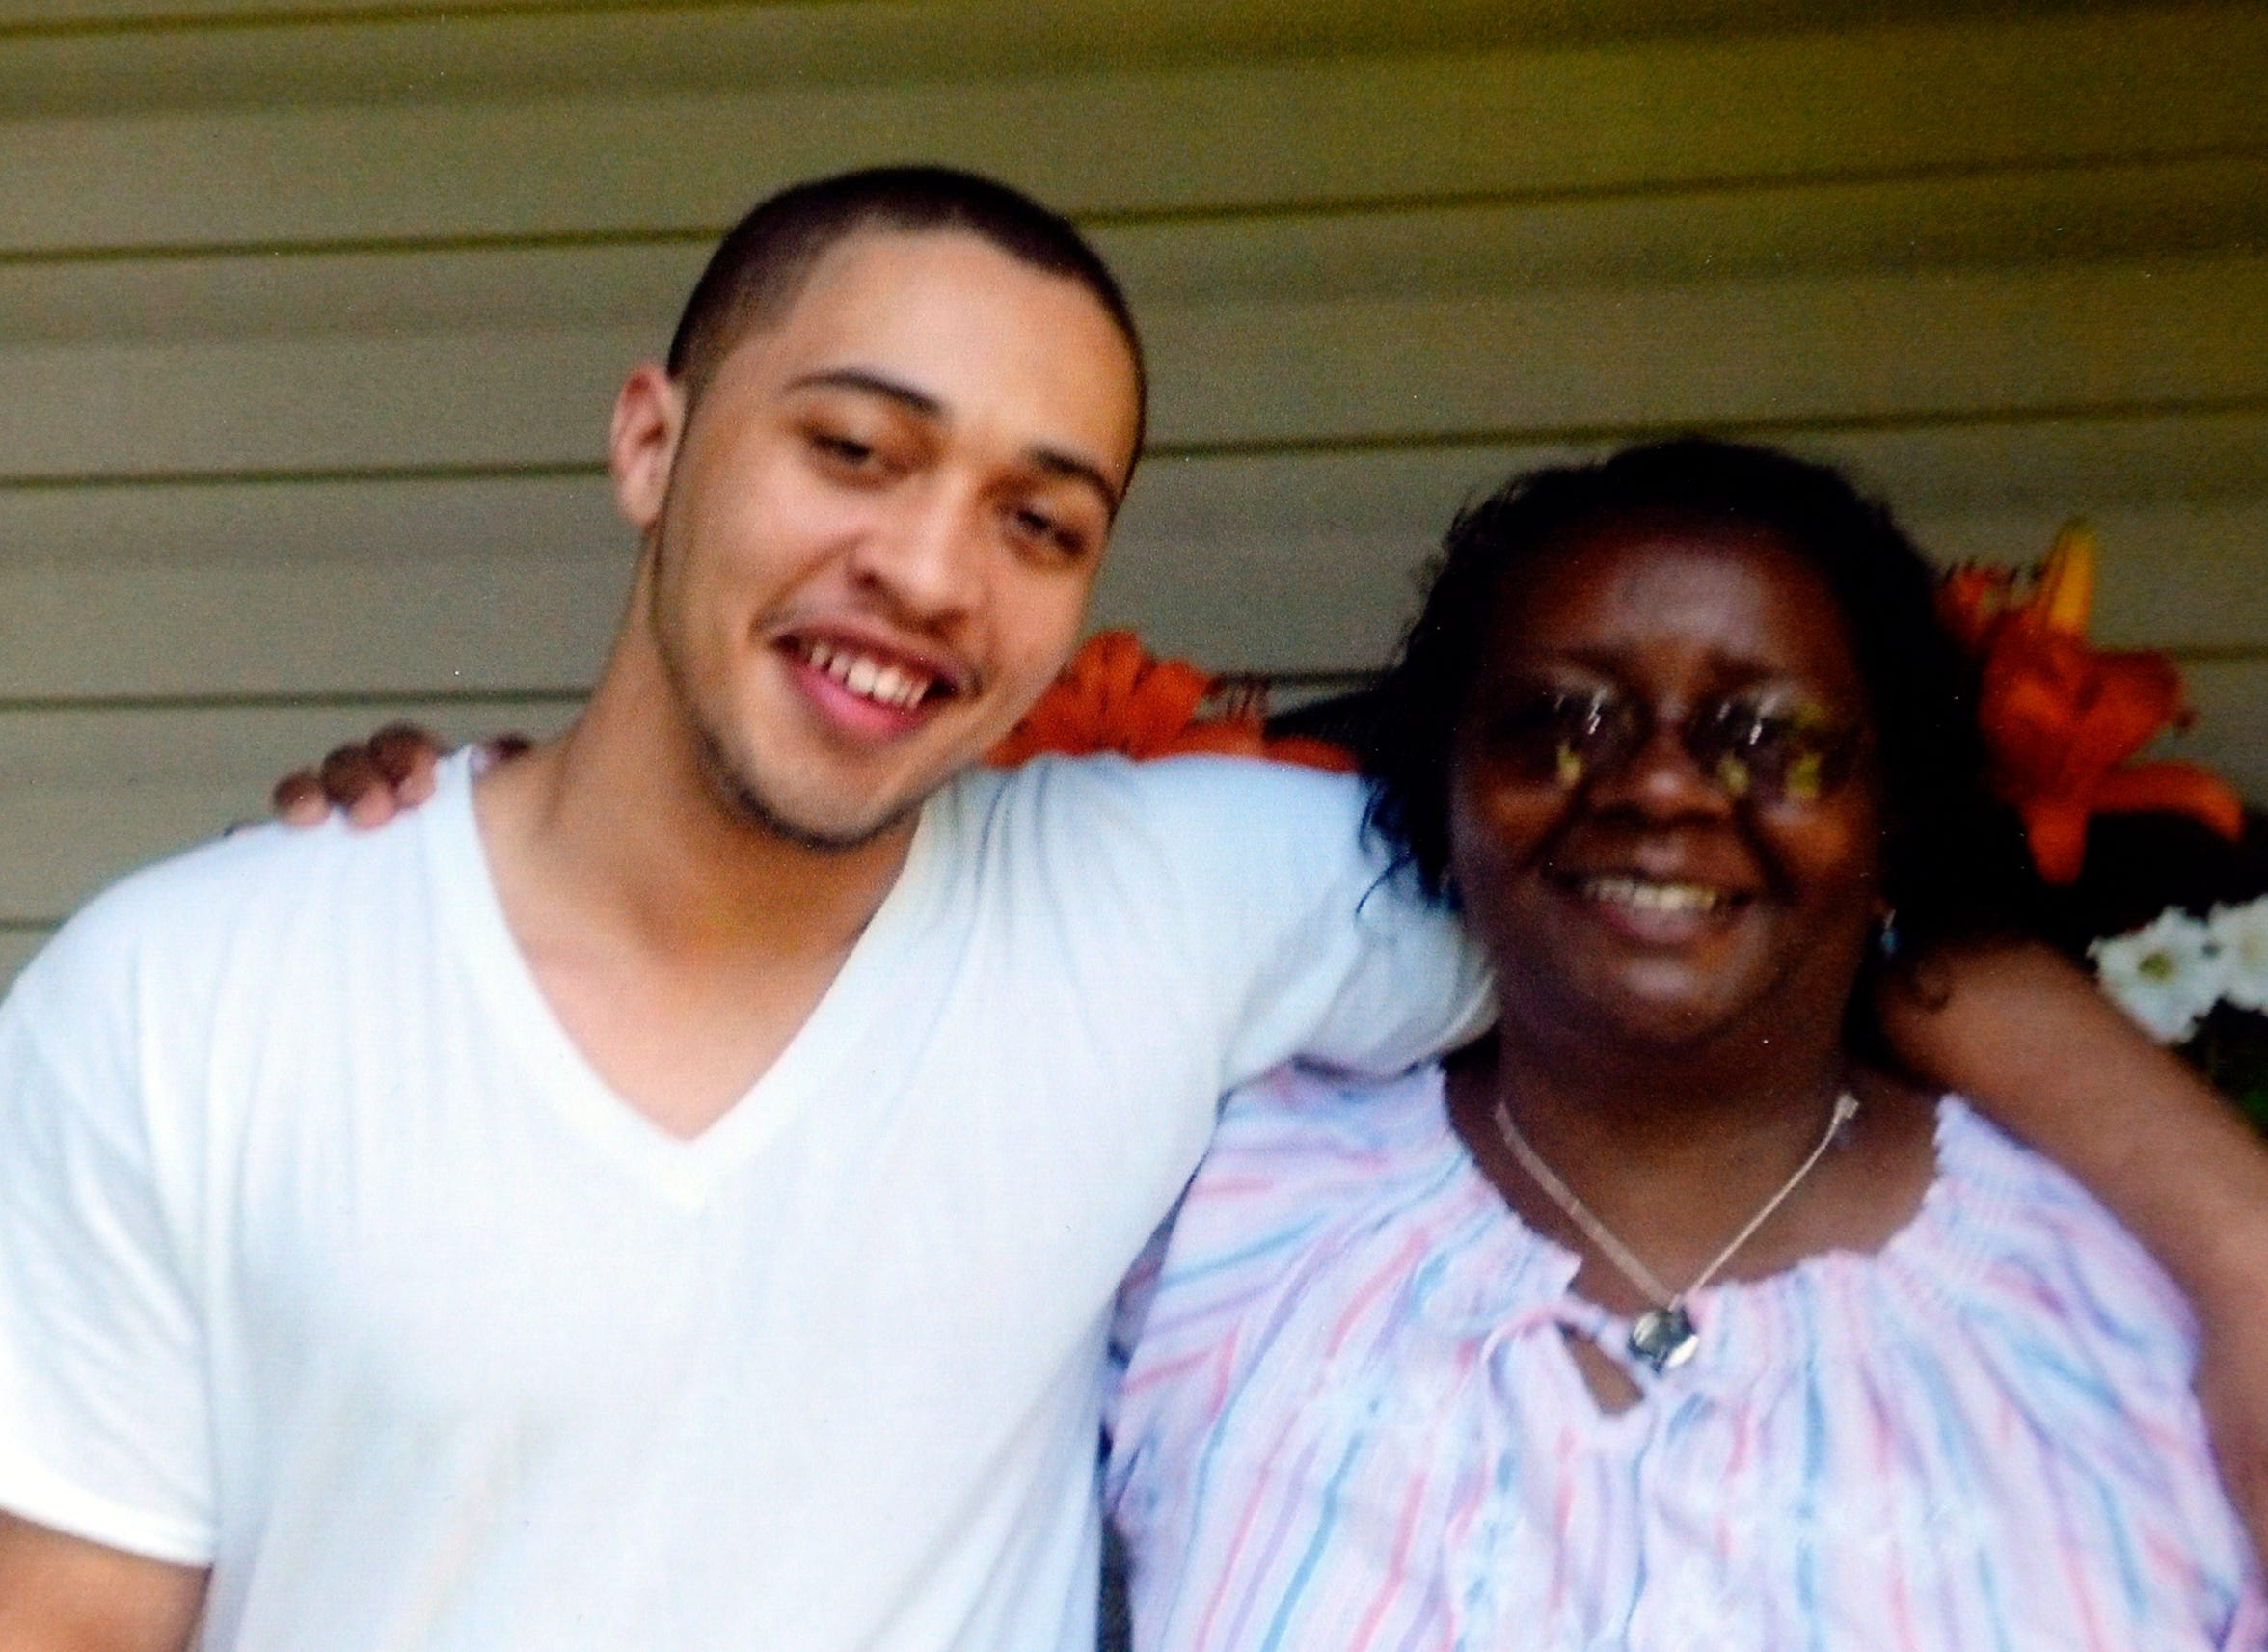 Josh Holton smiles with his grandmother, Mary Holton, in an undated family photo. Josh Holton, 20, died of a drug overdose in 2016.